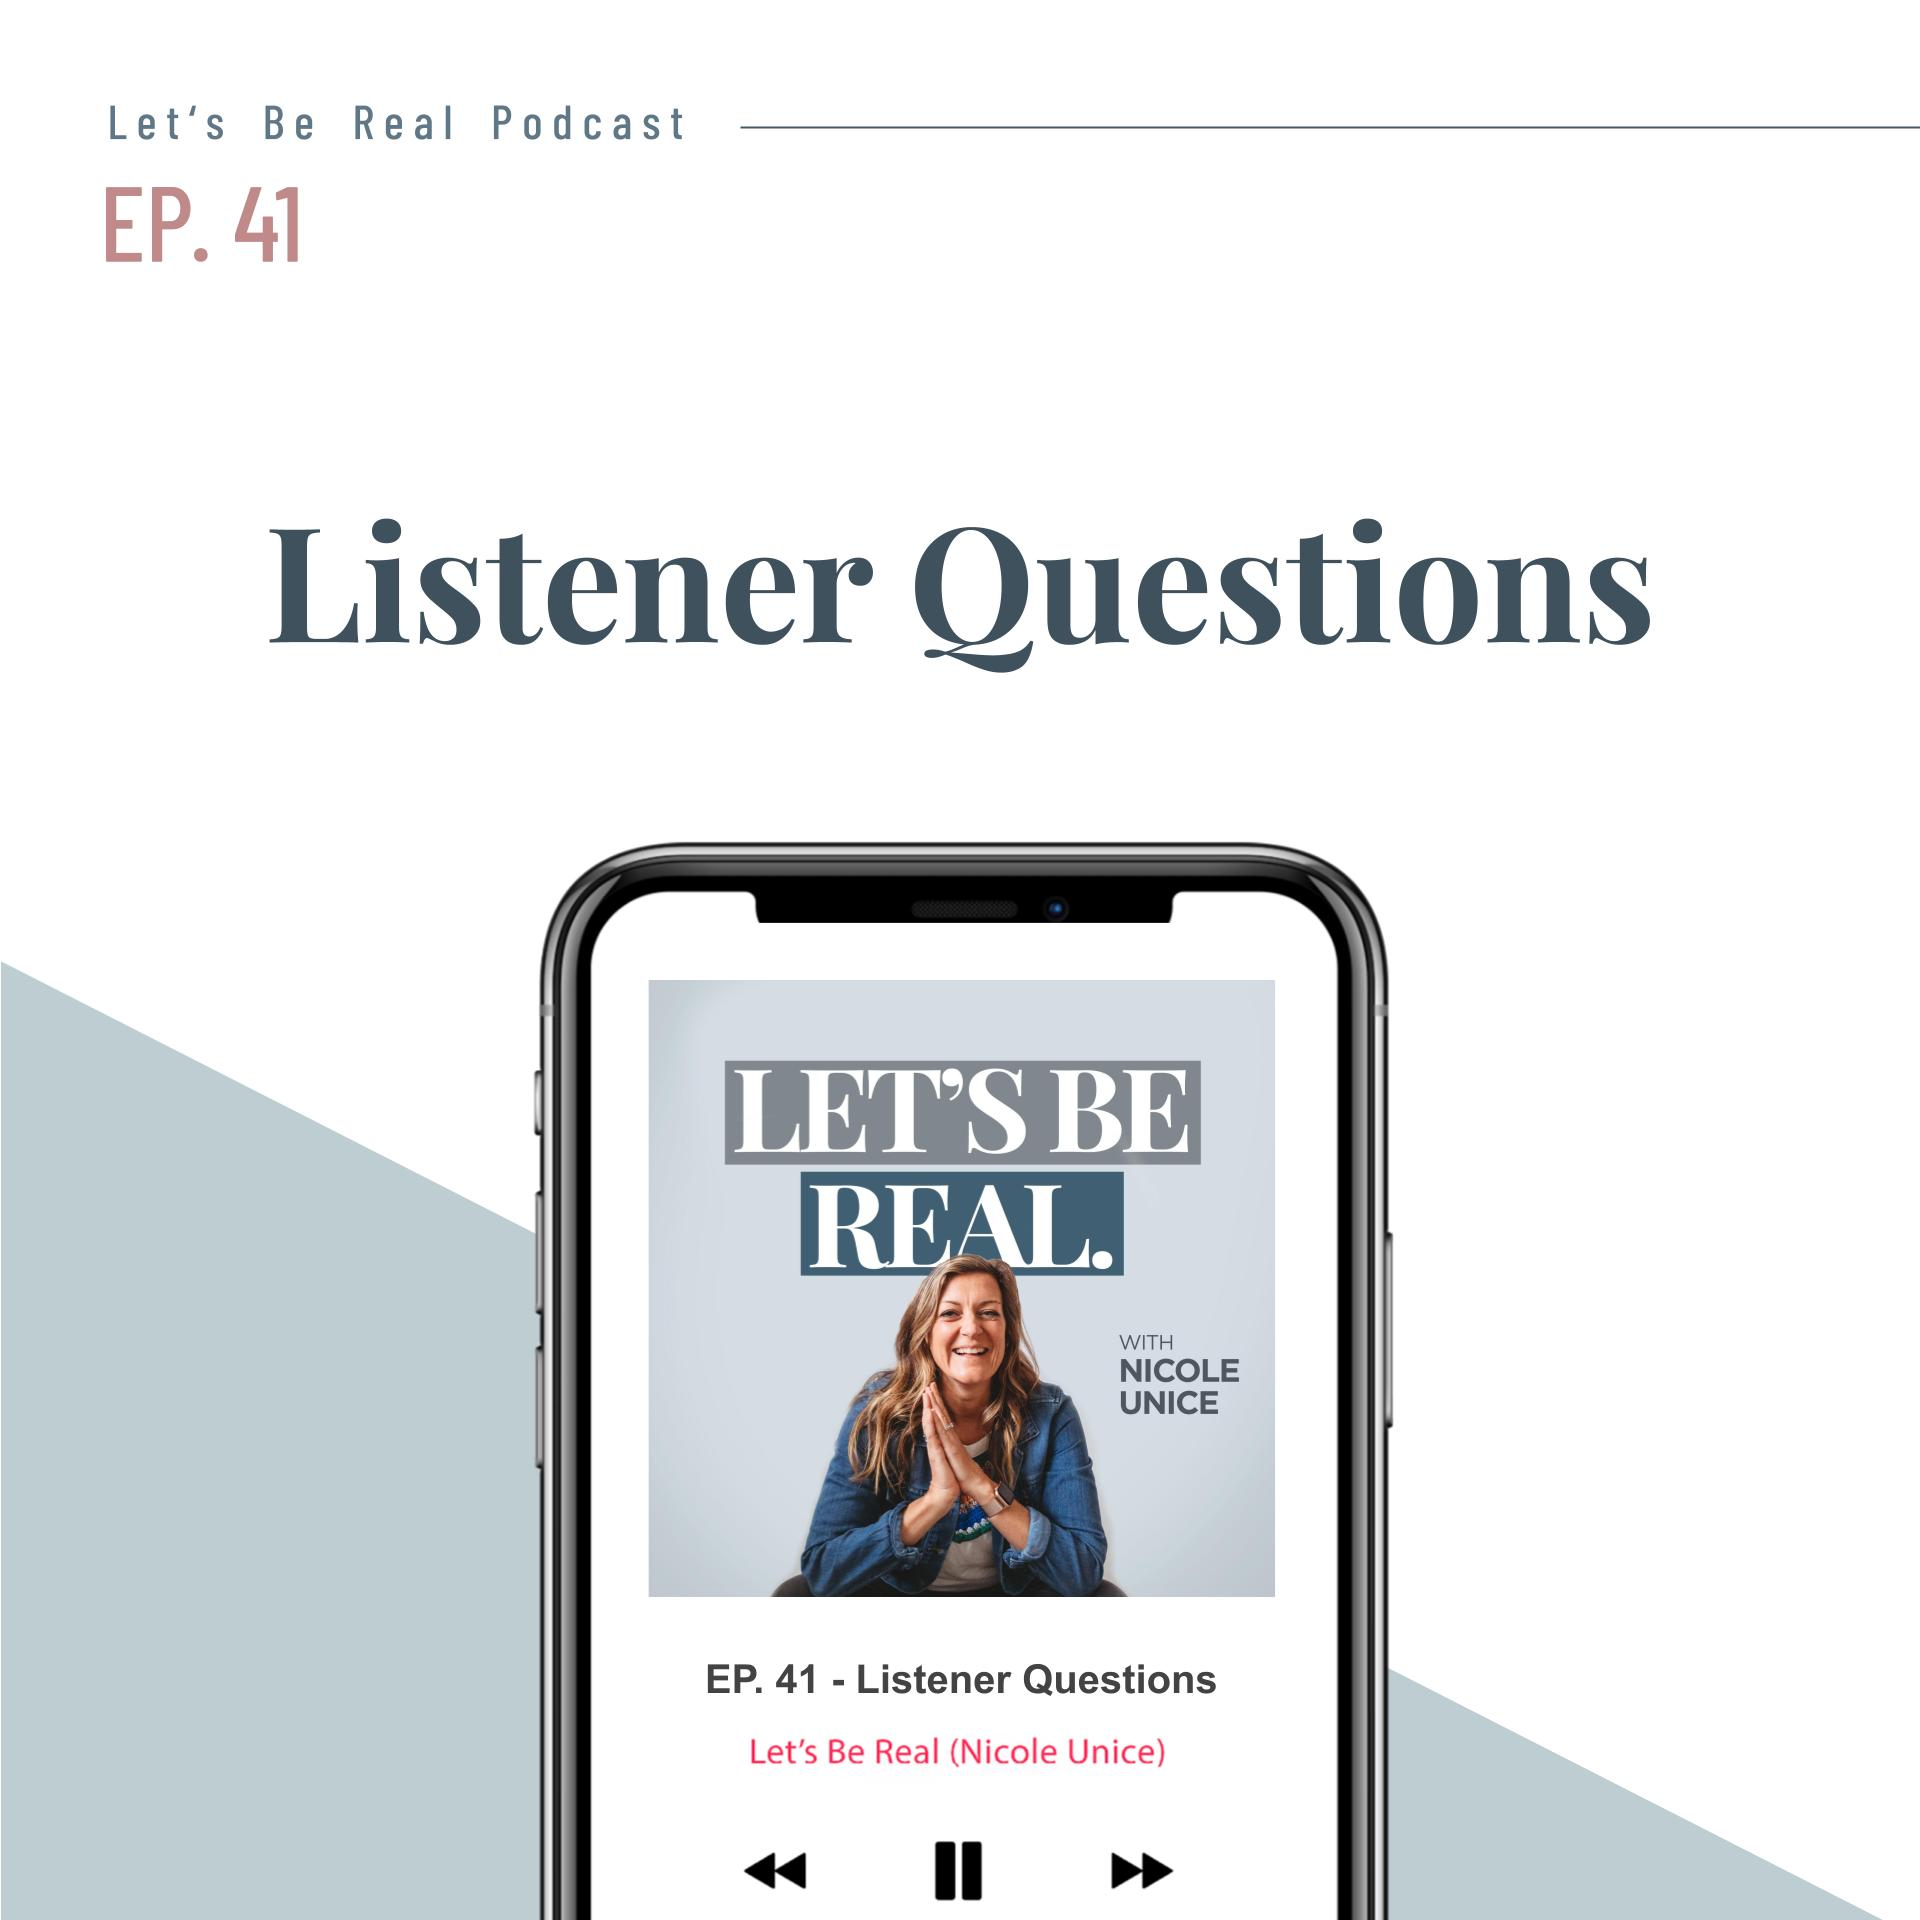 Listener Questions | Let's Be Real Podcast, Ep. 41